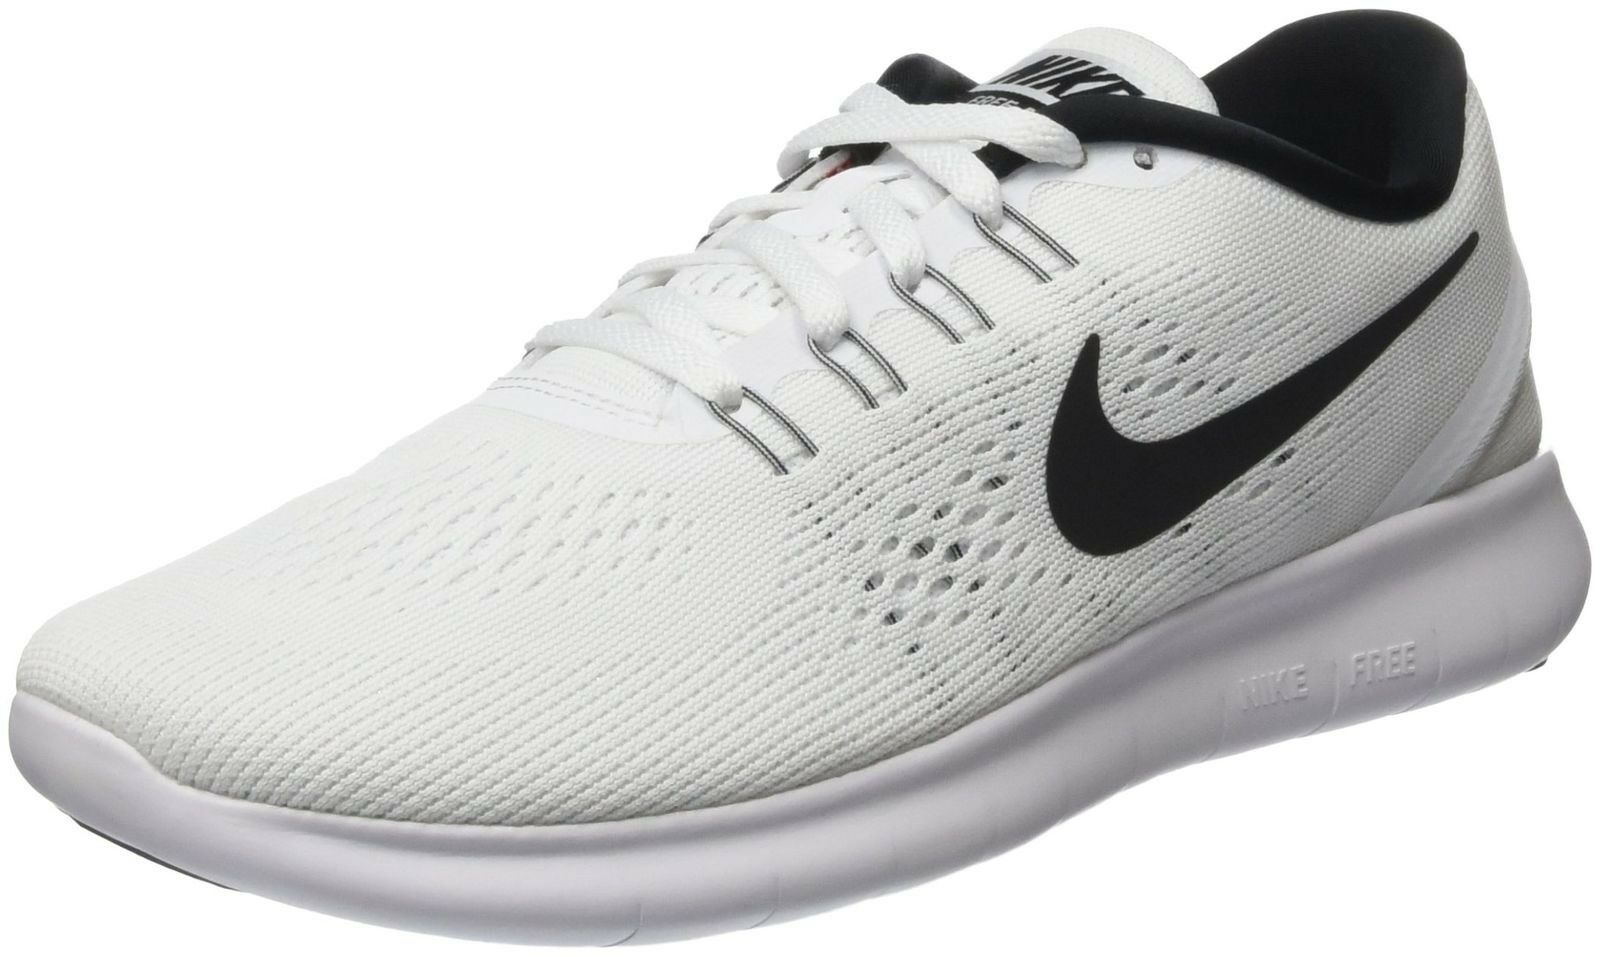 Nike Mens Free RN Running Shoes White/Black 831508-100 Size 11